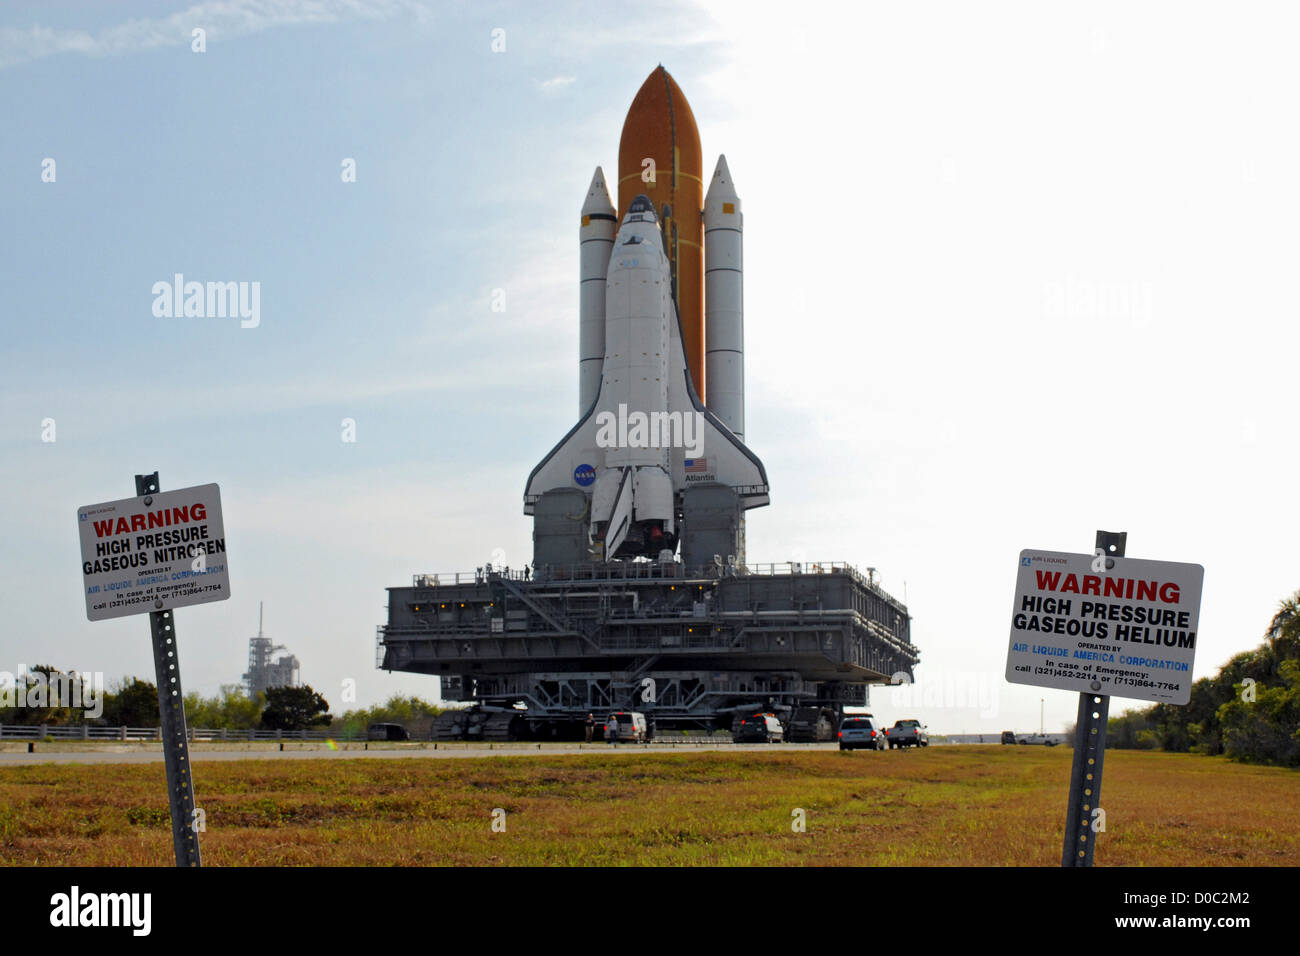 The Space Shuttle Atlantis rolls out to Pad 39A in preparation for launch on STS-117. - Stock Image